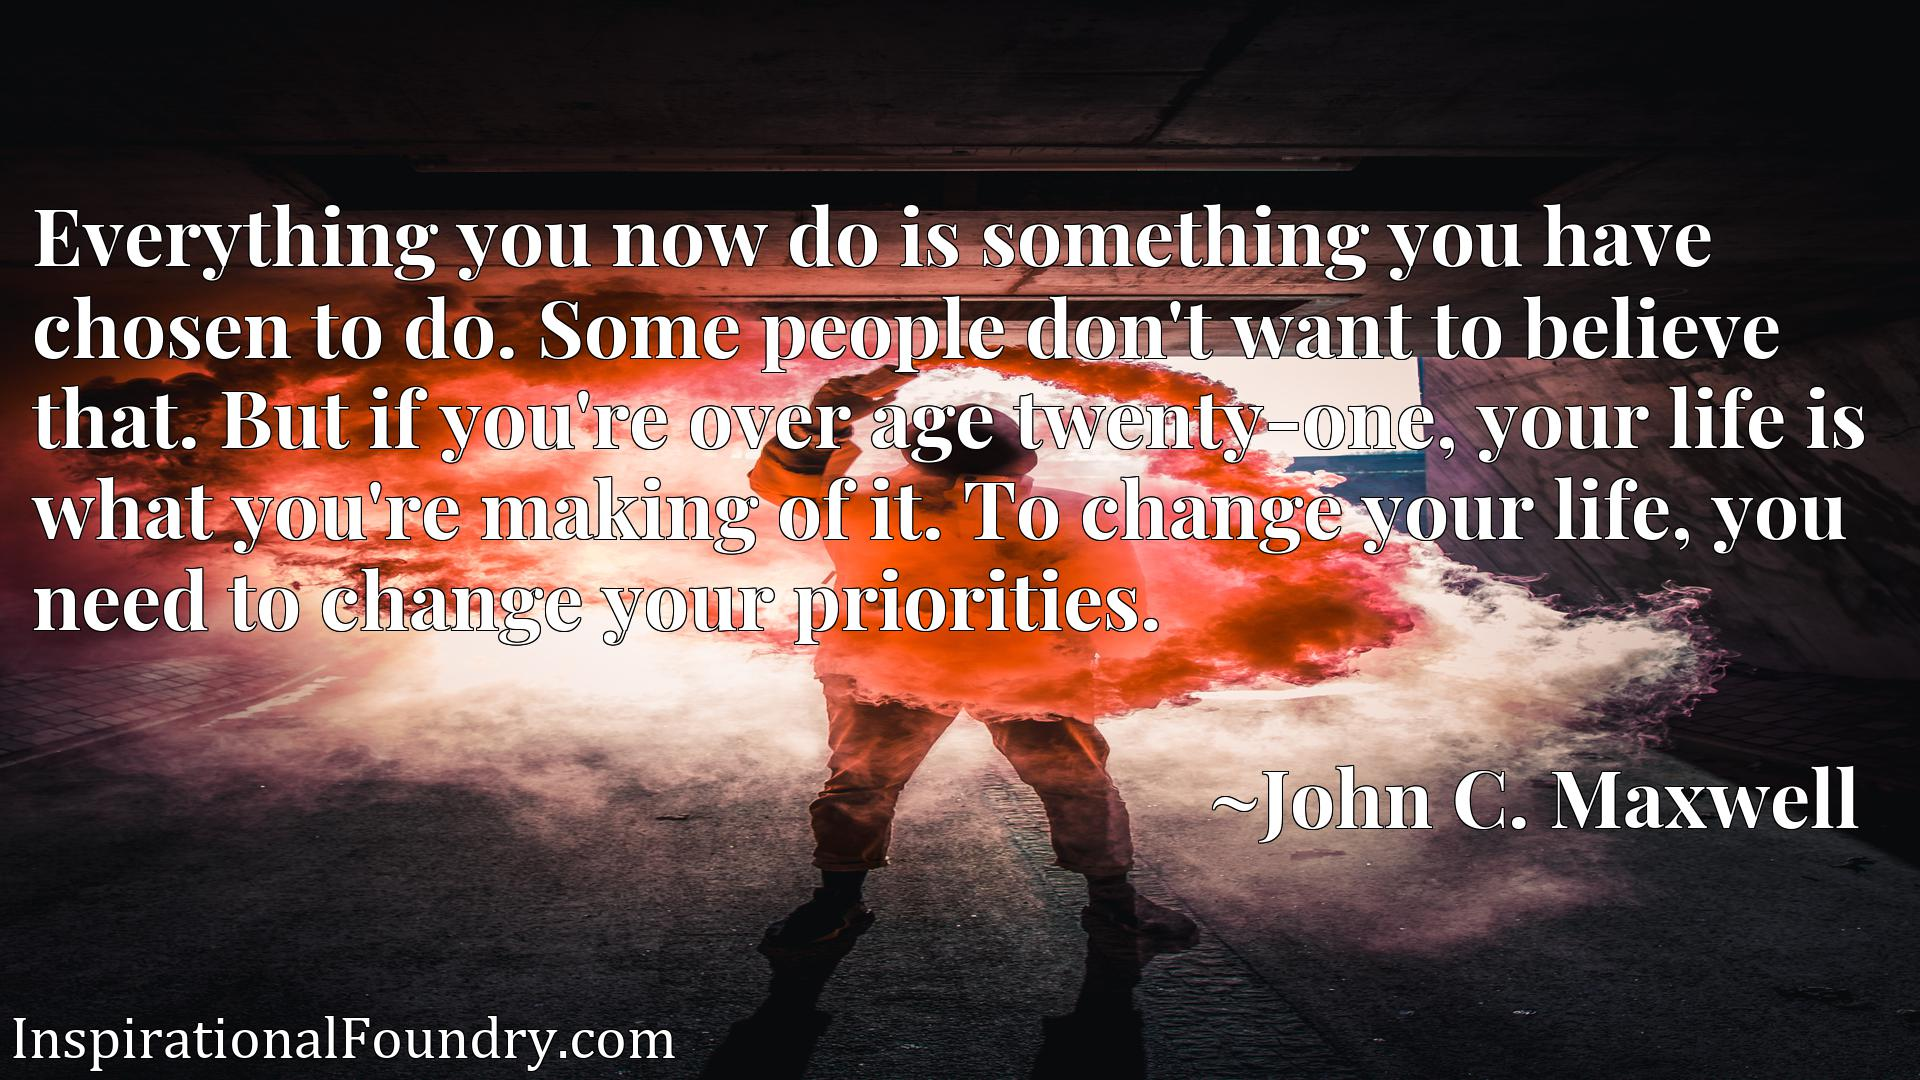 Everything you now do is something you have chosen to do. Some people don't want to believe that. But if you're over age twenty-one, your life is what you're making of it. To change your life, you need to change your priorities.